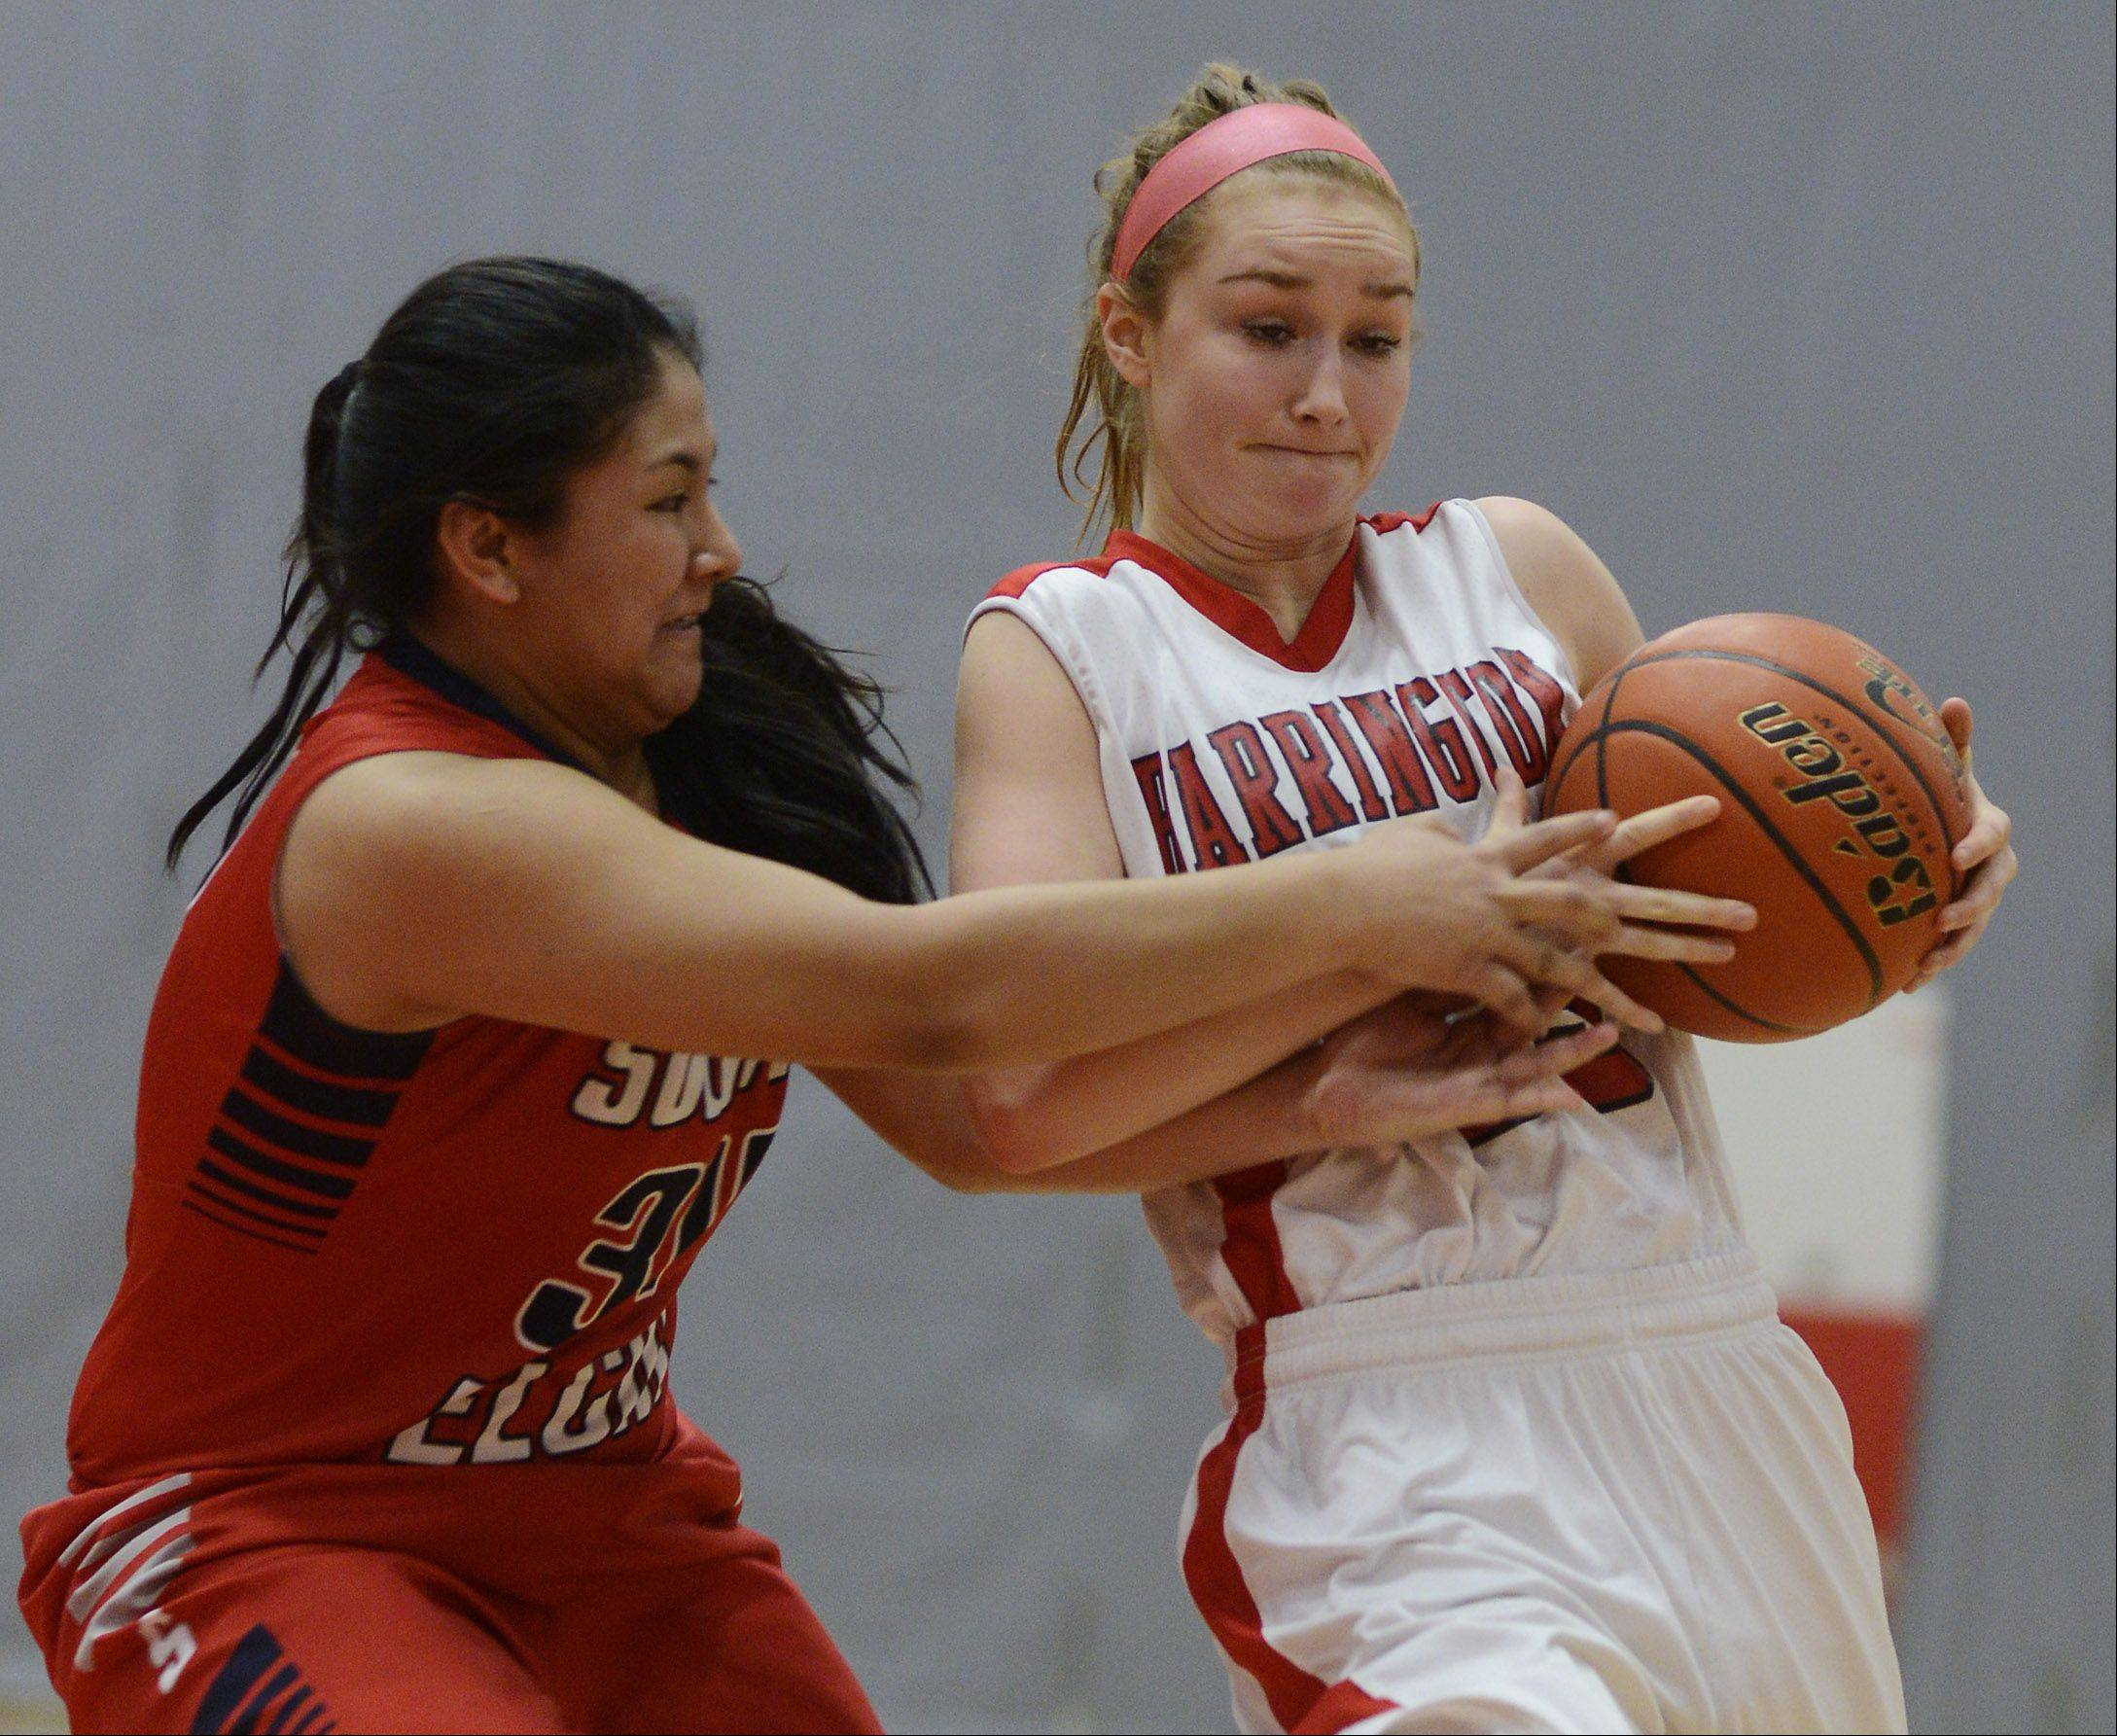 South Elgin's Nadia Yang, left, tries to steal the ball from Barrington's Brooke Gunderson.